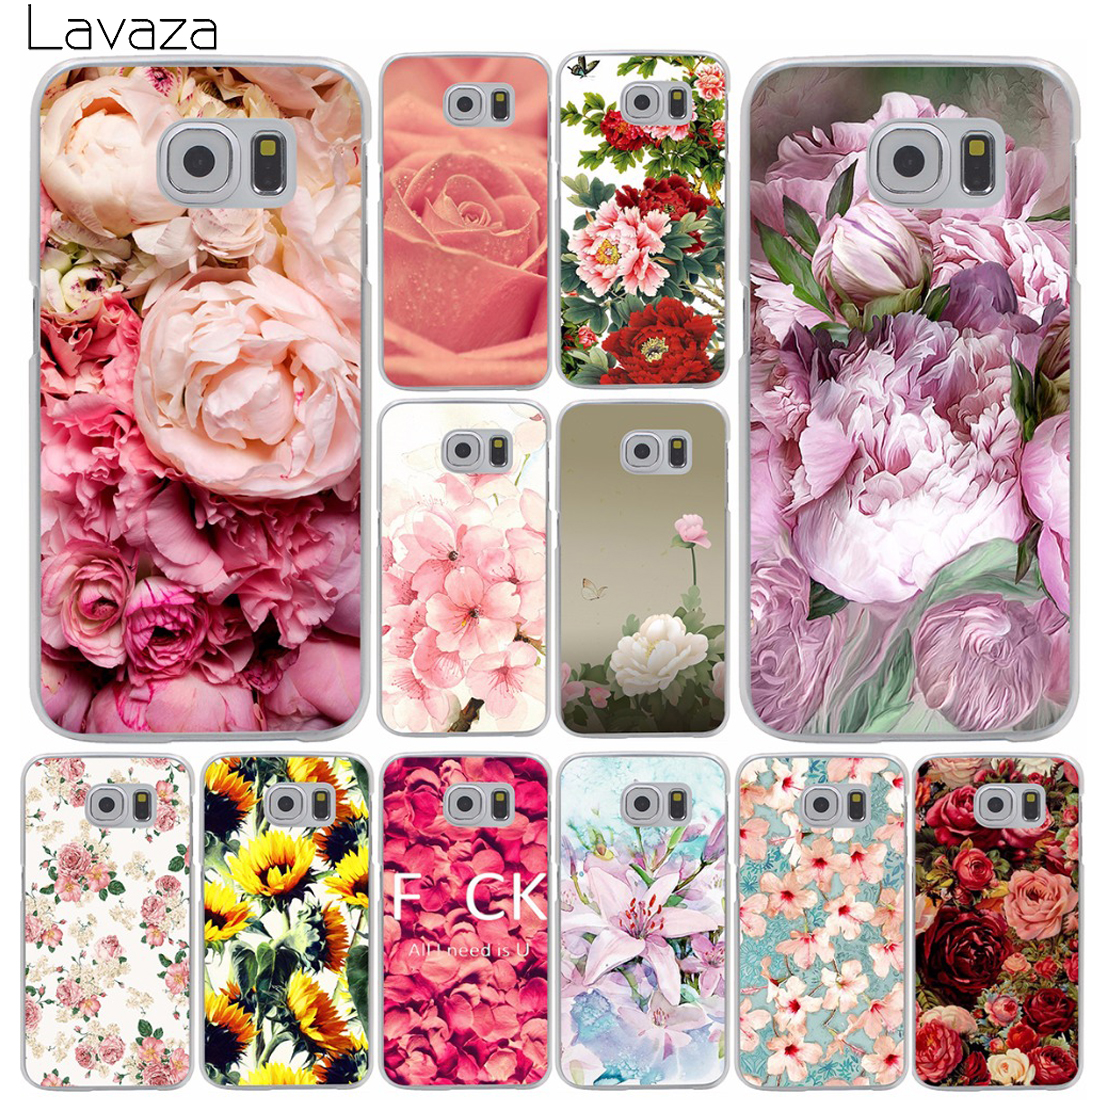 peony Flower Hard Cases for Samsung Galaxy S2 S3 S4 S5 & mini s6 s7 edge plus grand prime A3 A5 A7 A8 Note 2 3 4 5 j5 j7 version